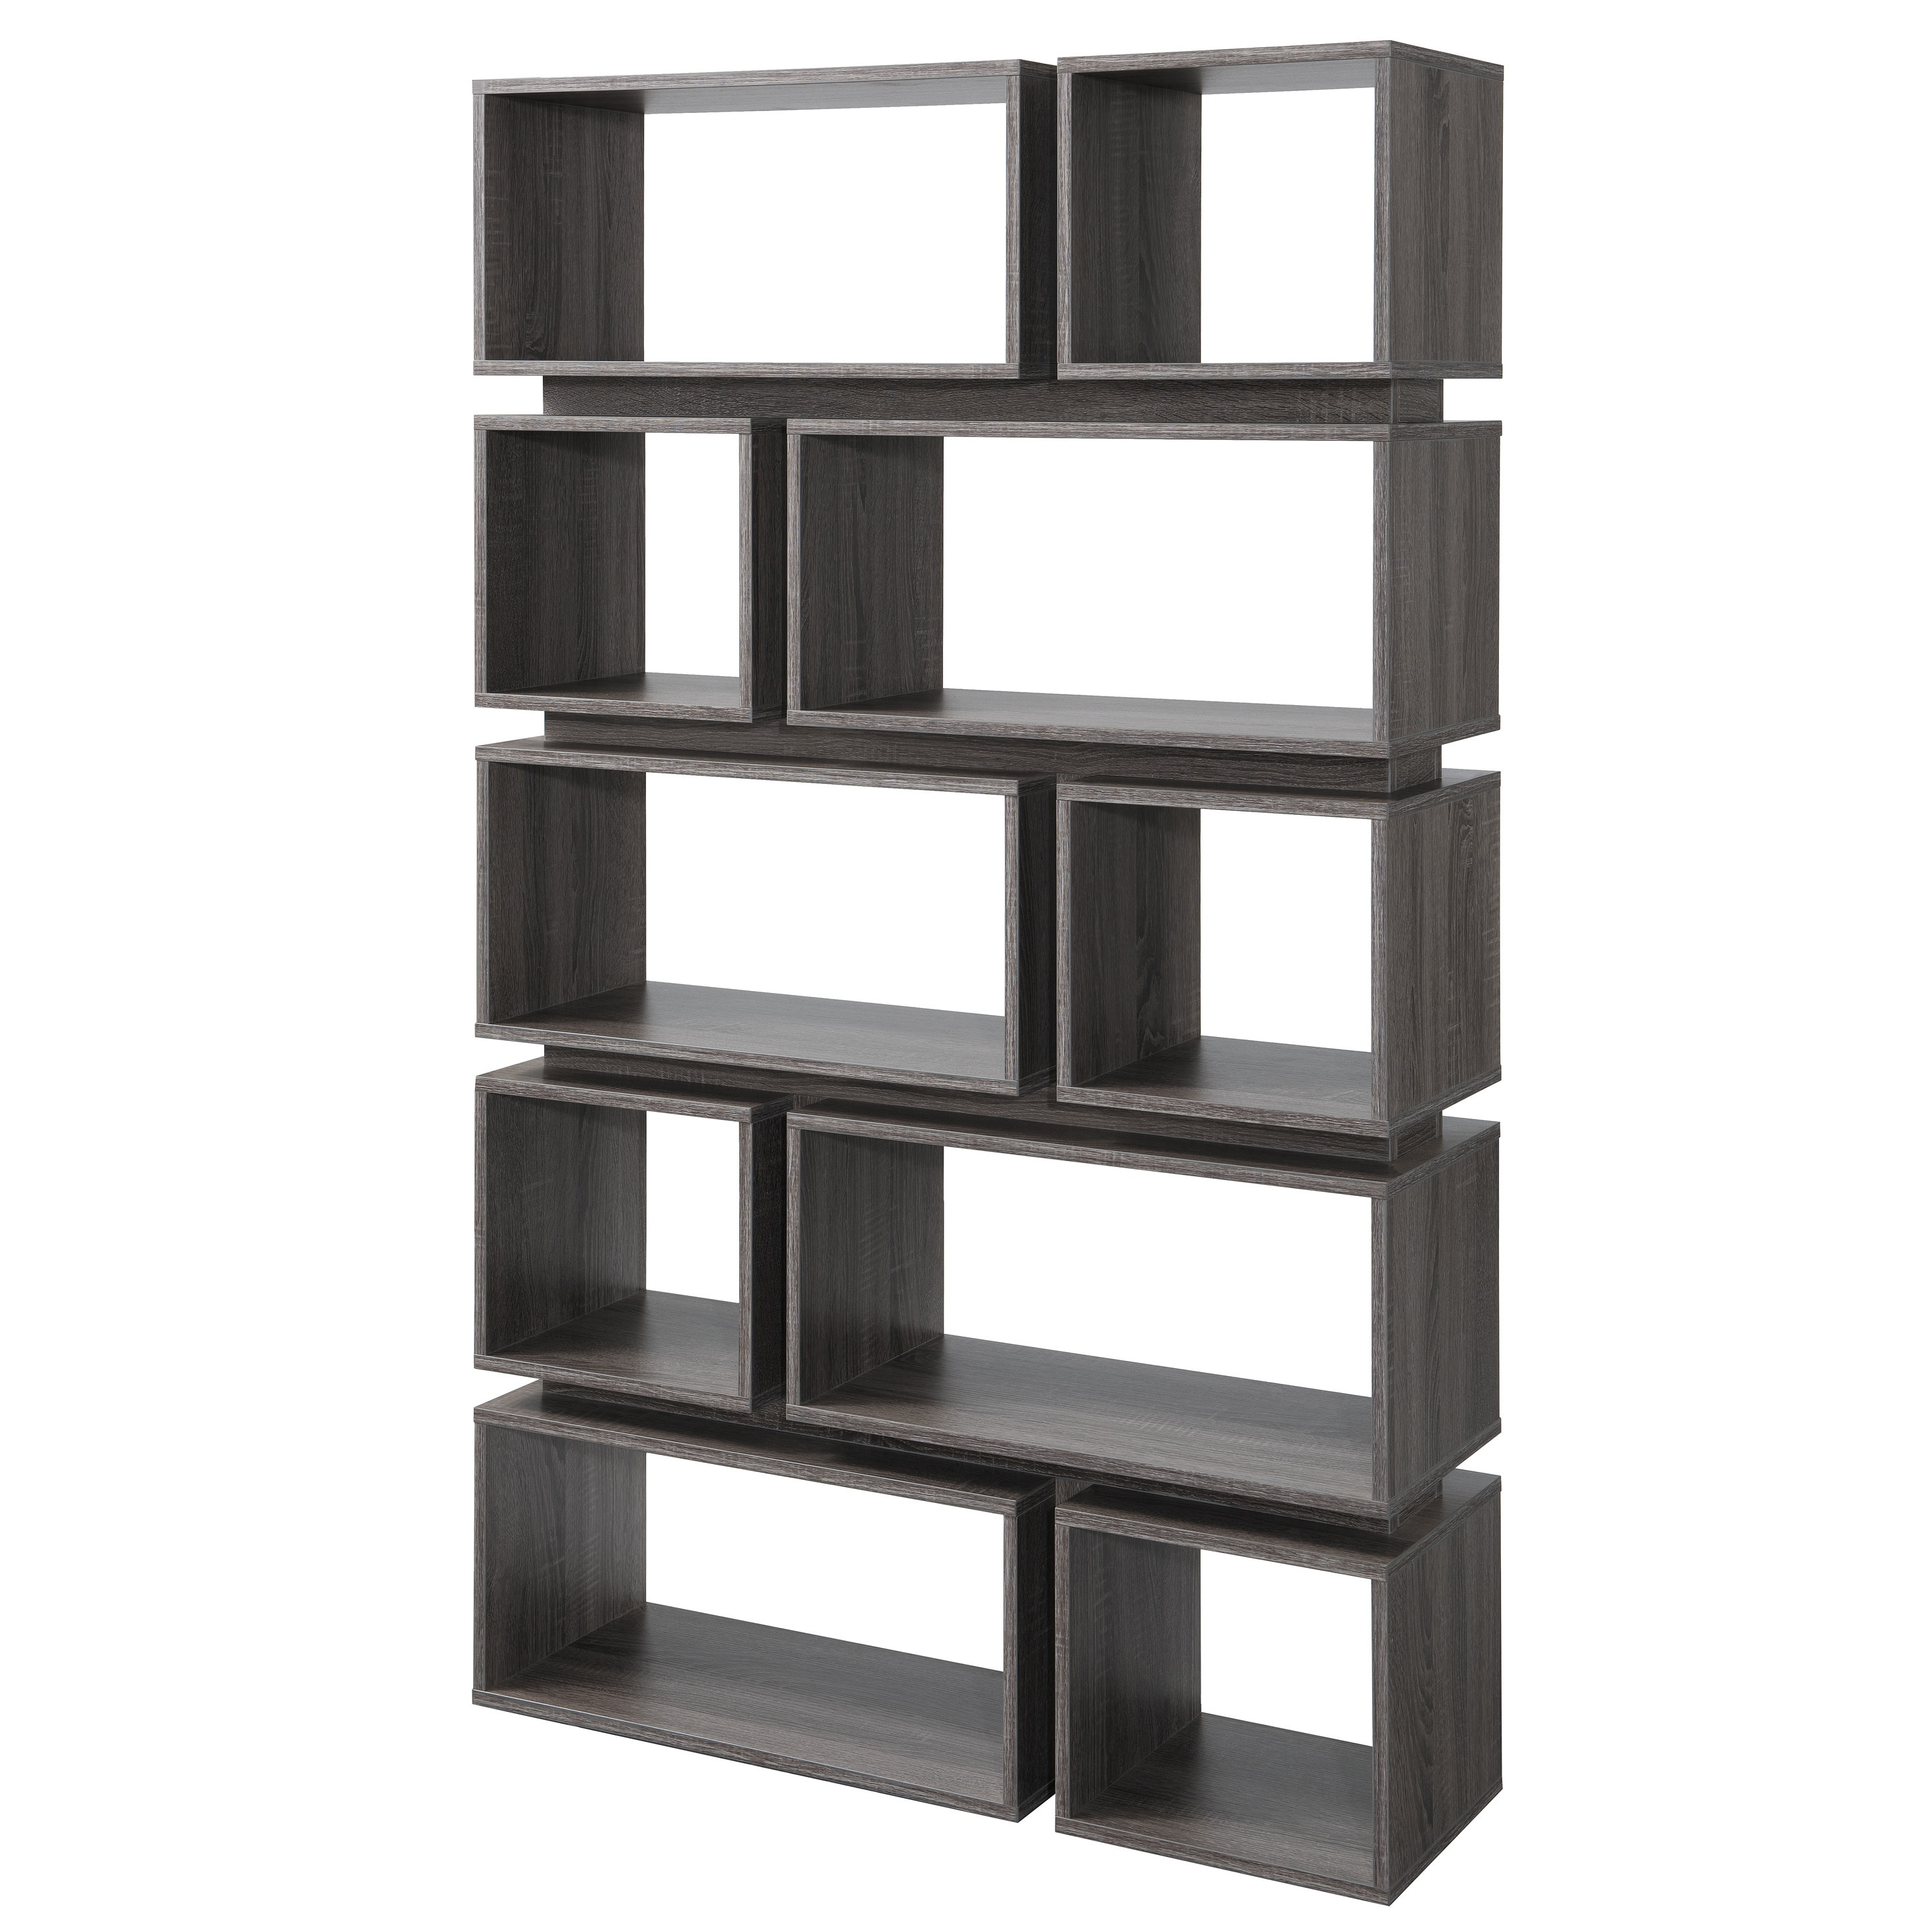 Tiered bookcase best home design 2018 for Furniture of america cassidy